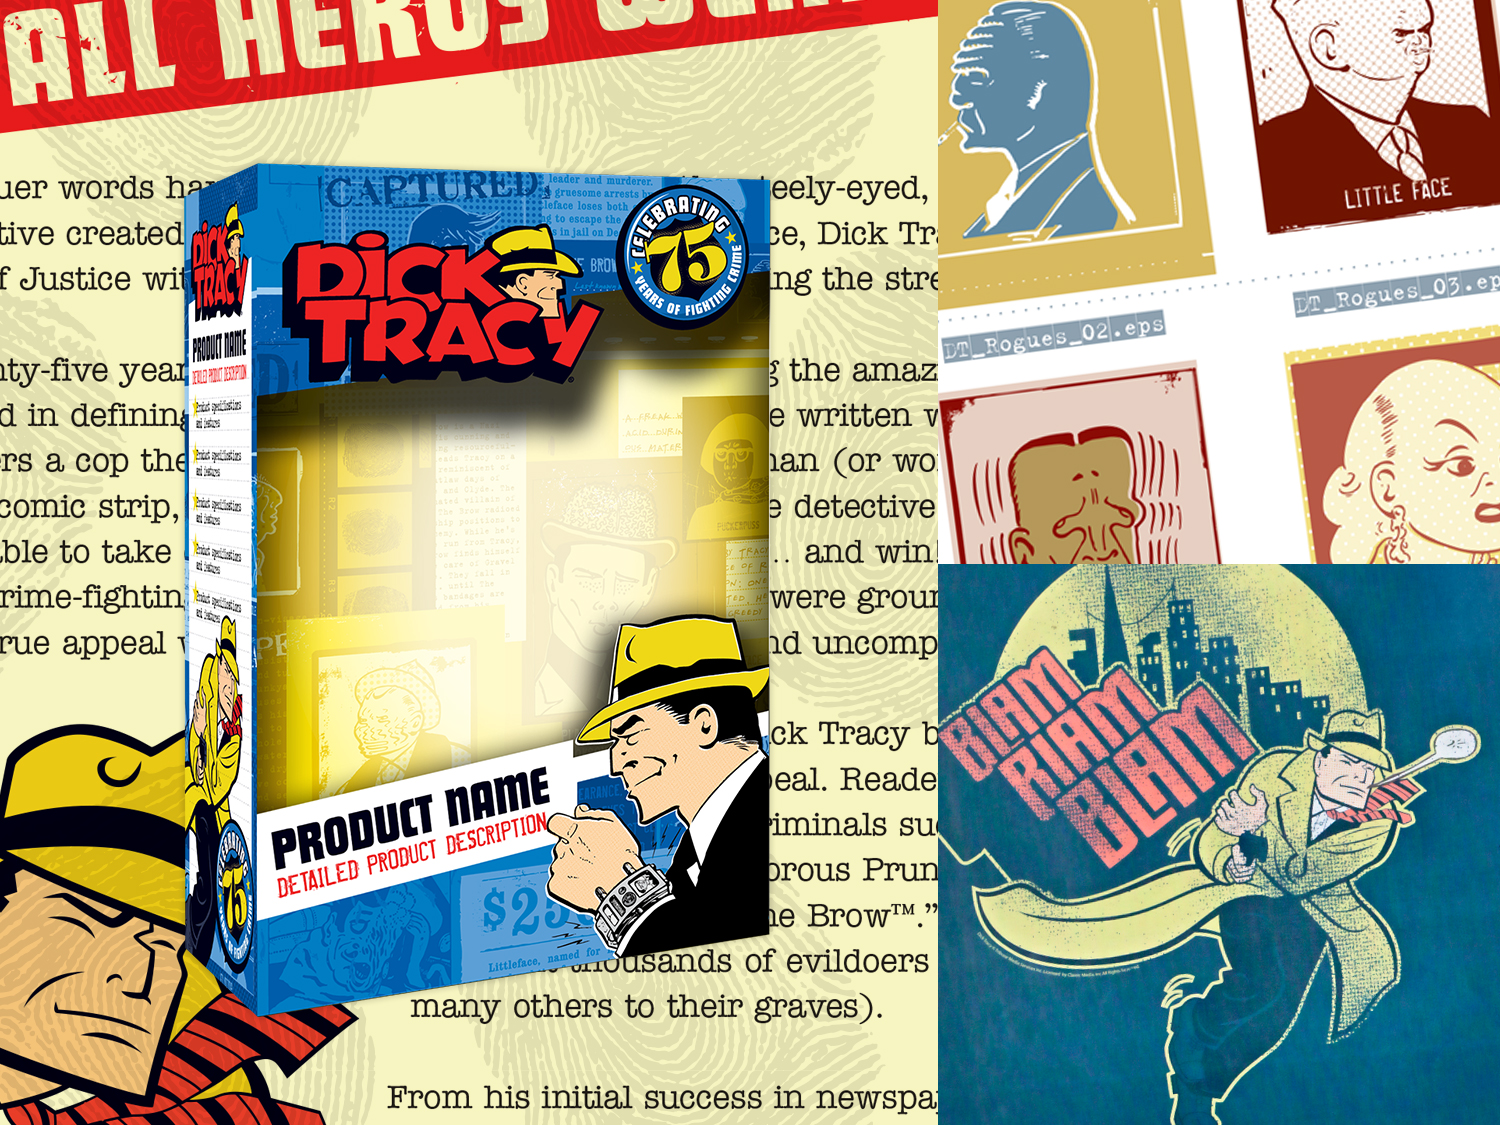 Dick-Tracy-style-guide_1500x1125.jpg